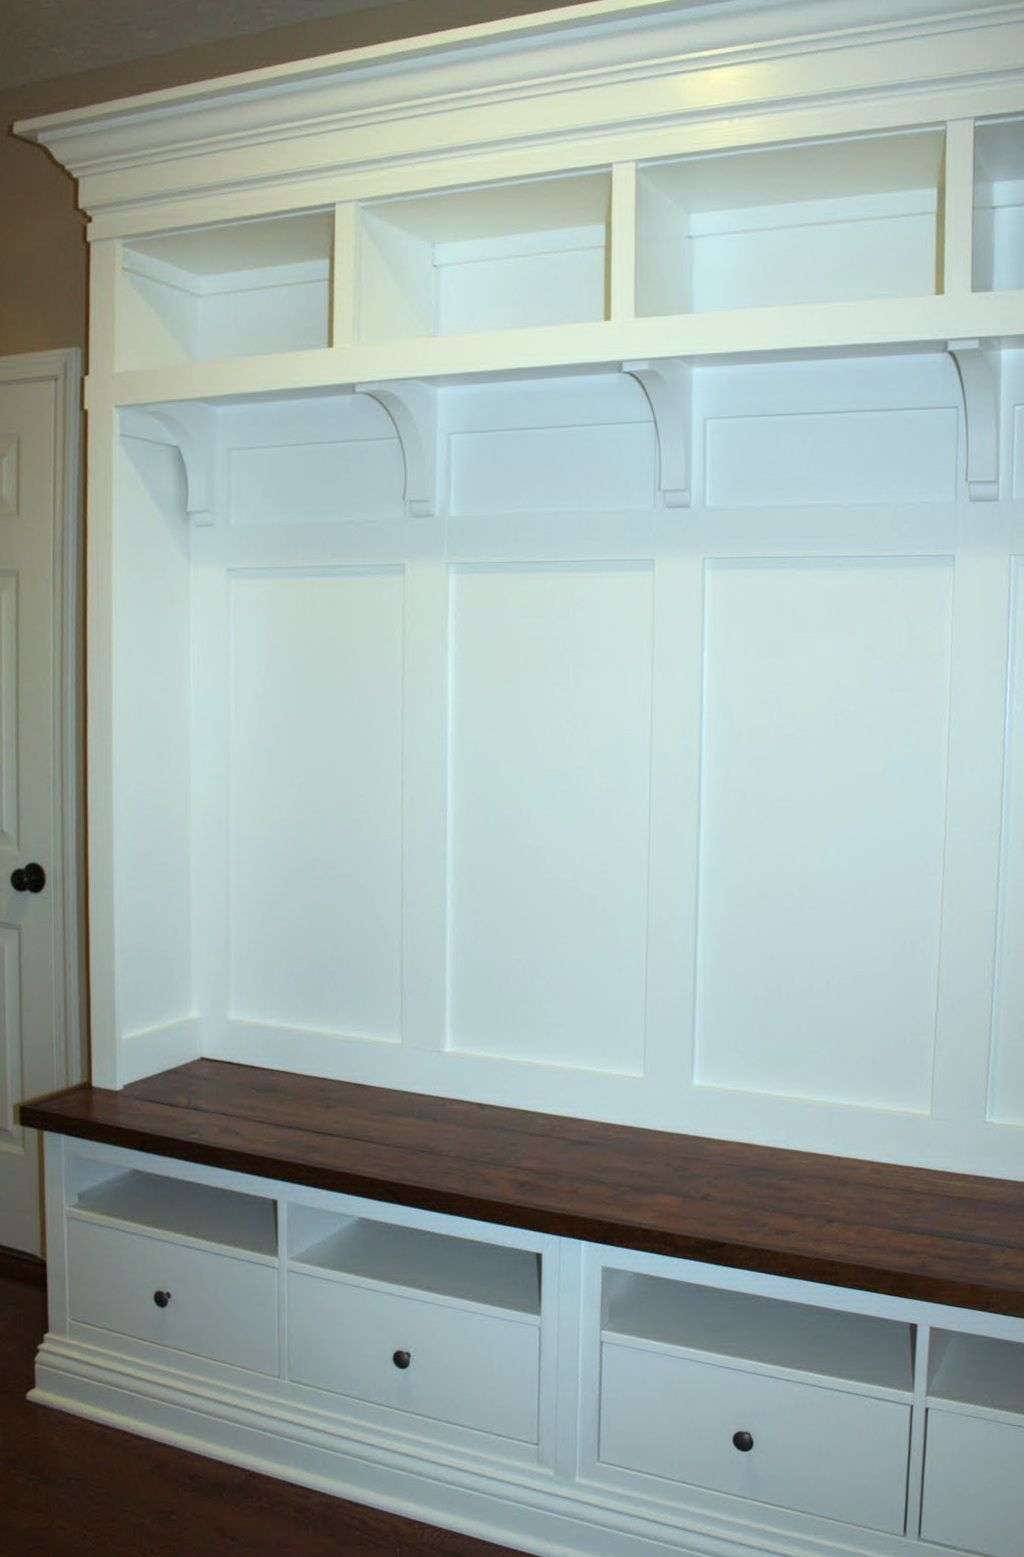 20 Brilliant Mudroom Cubbies Dimensions Encouraged In Order To My Own Weblog On This Occasion I Ll Prov Mud Room Storage Mudroom Storage Bench Ikea Mud Room